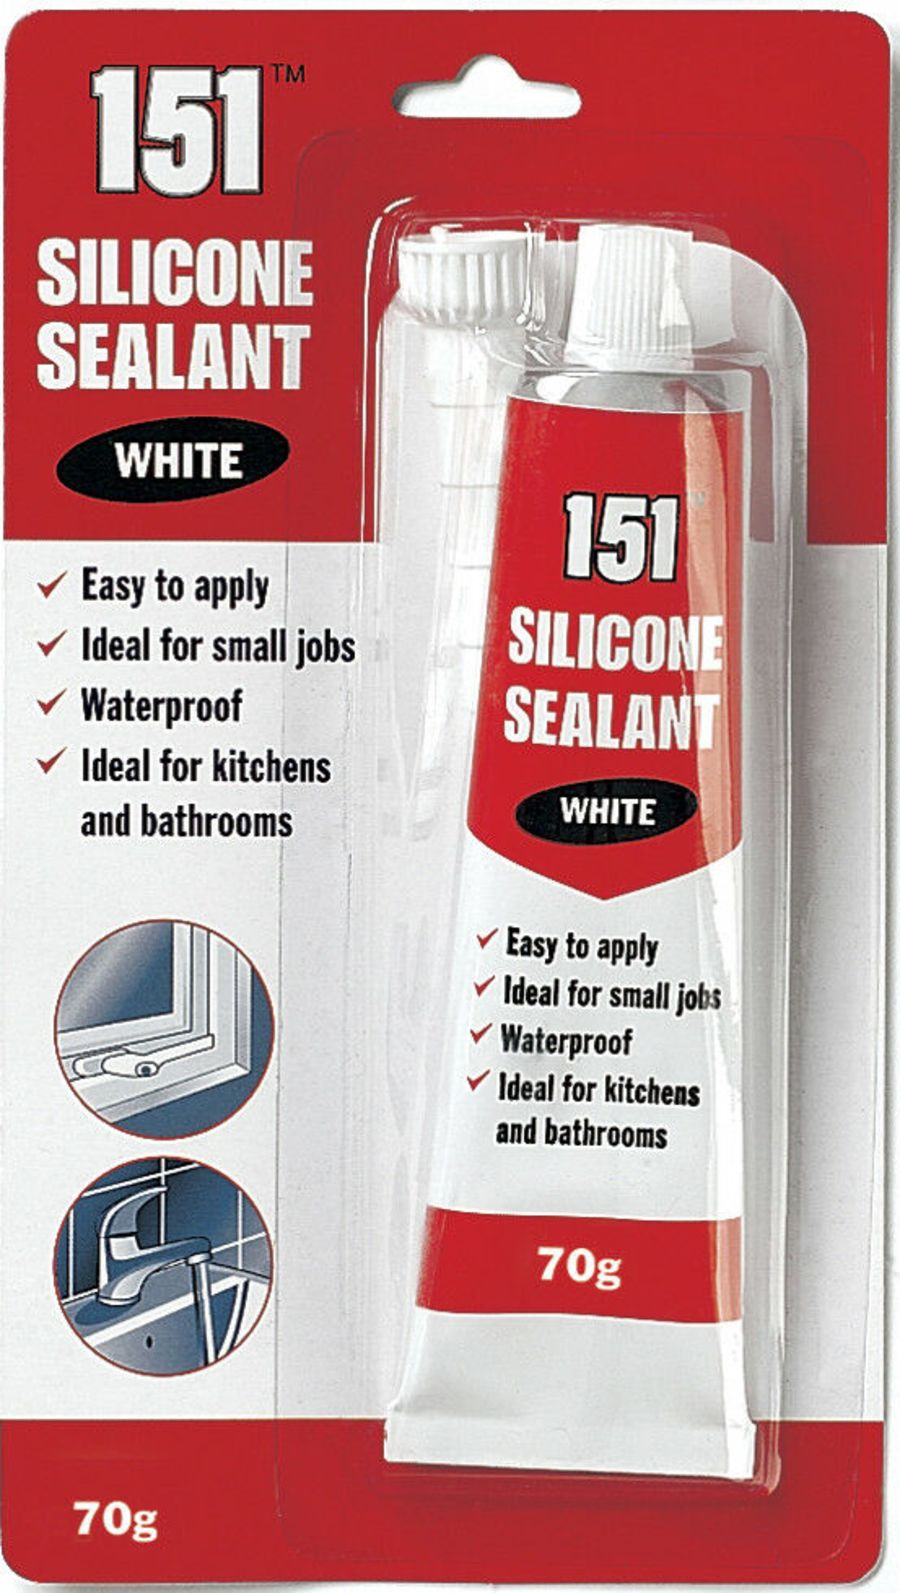 White Waterproof Silicone Sealant 70g_copy